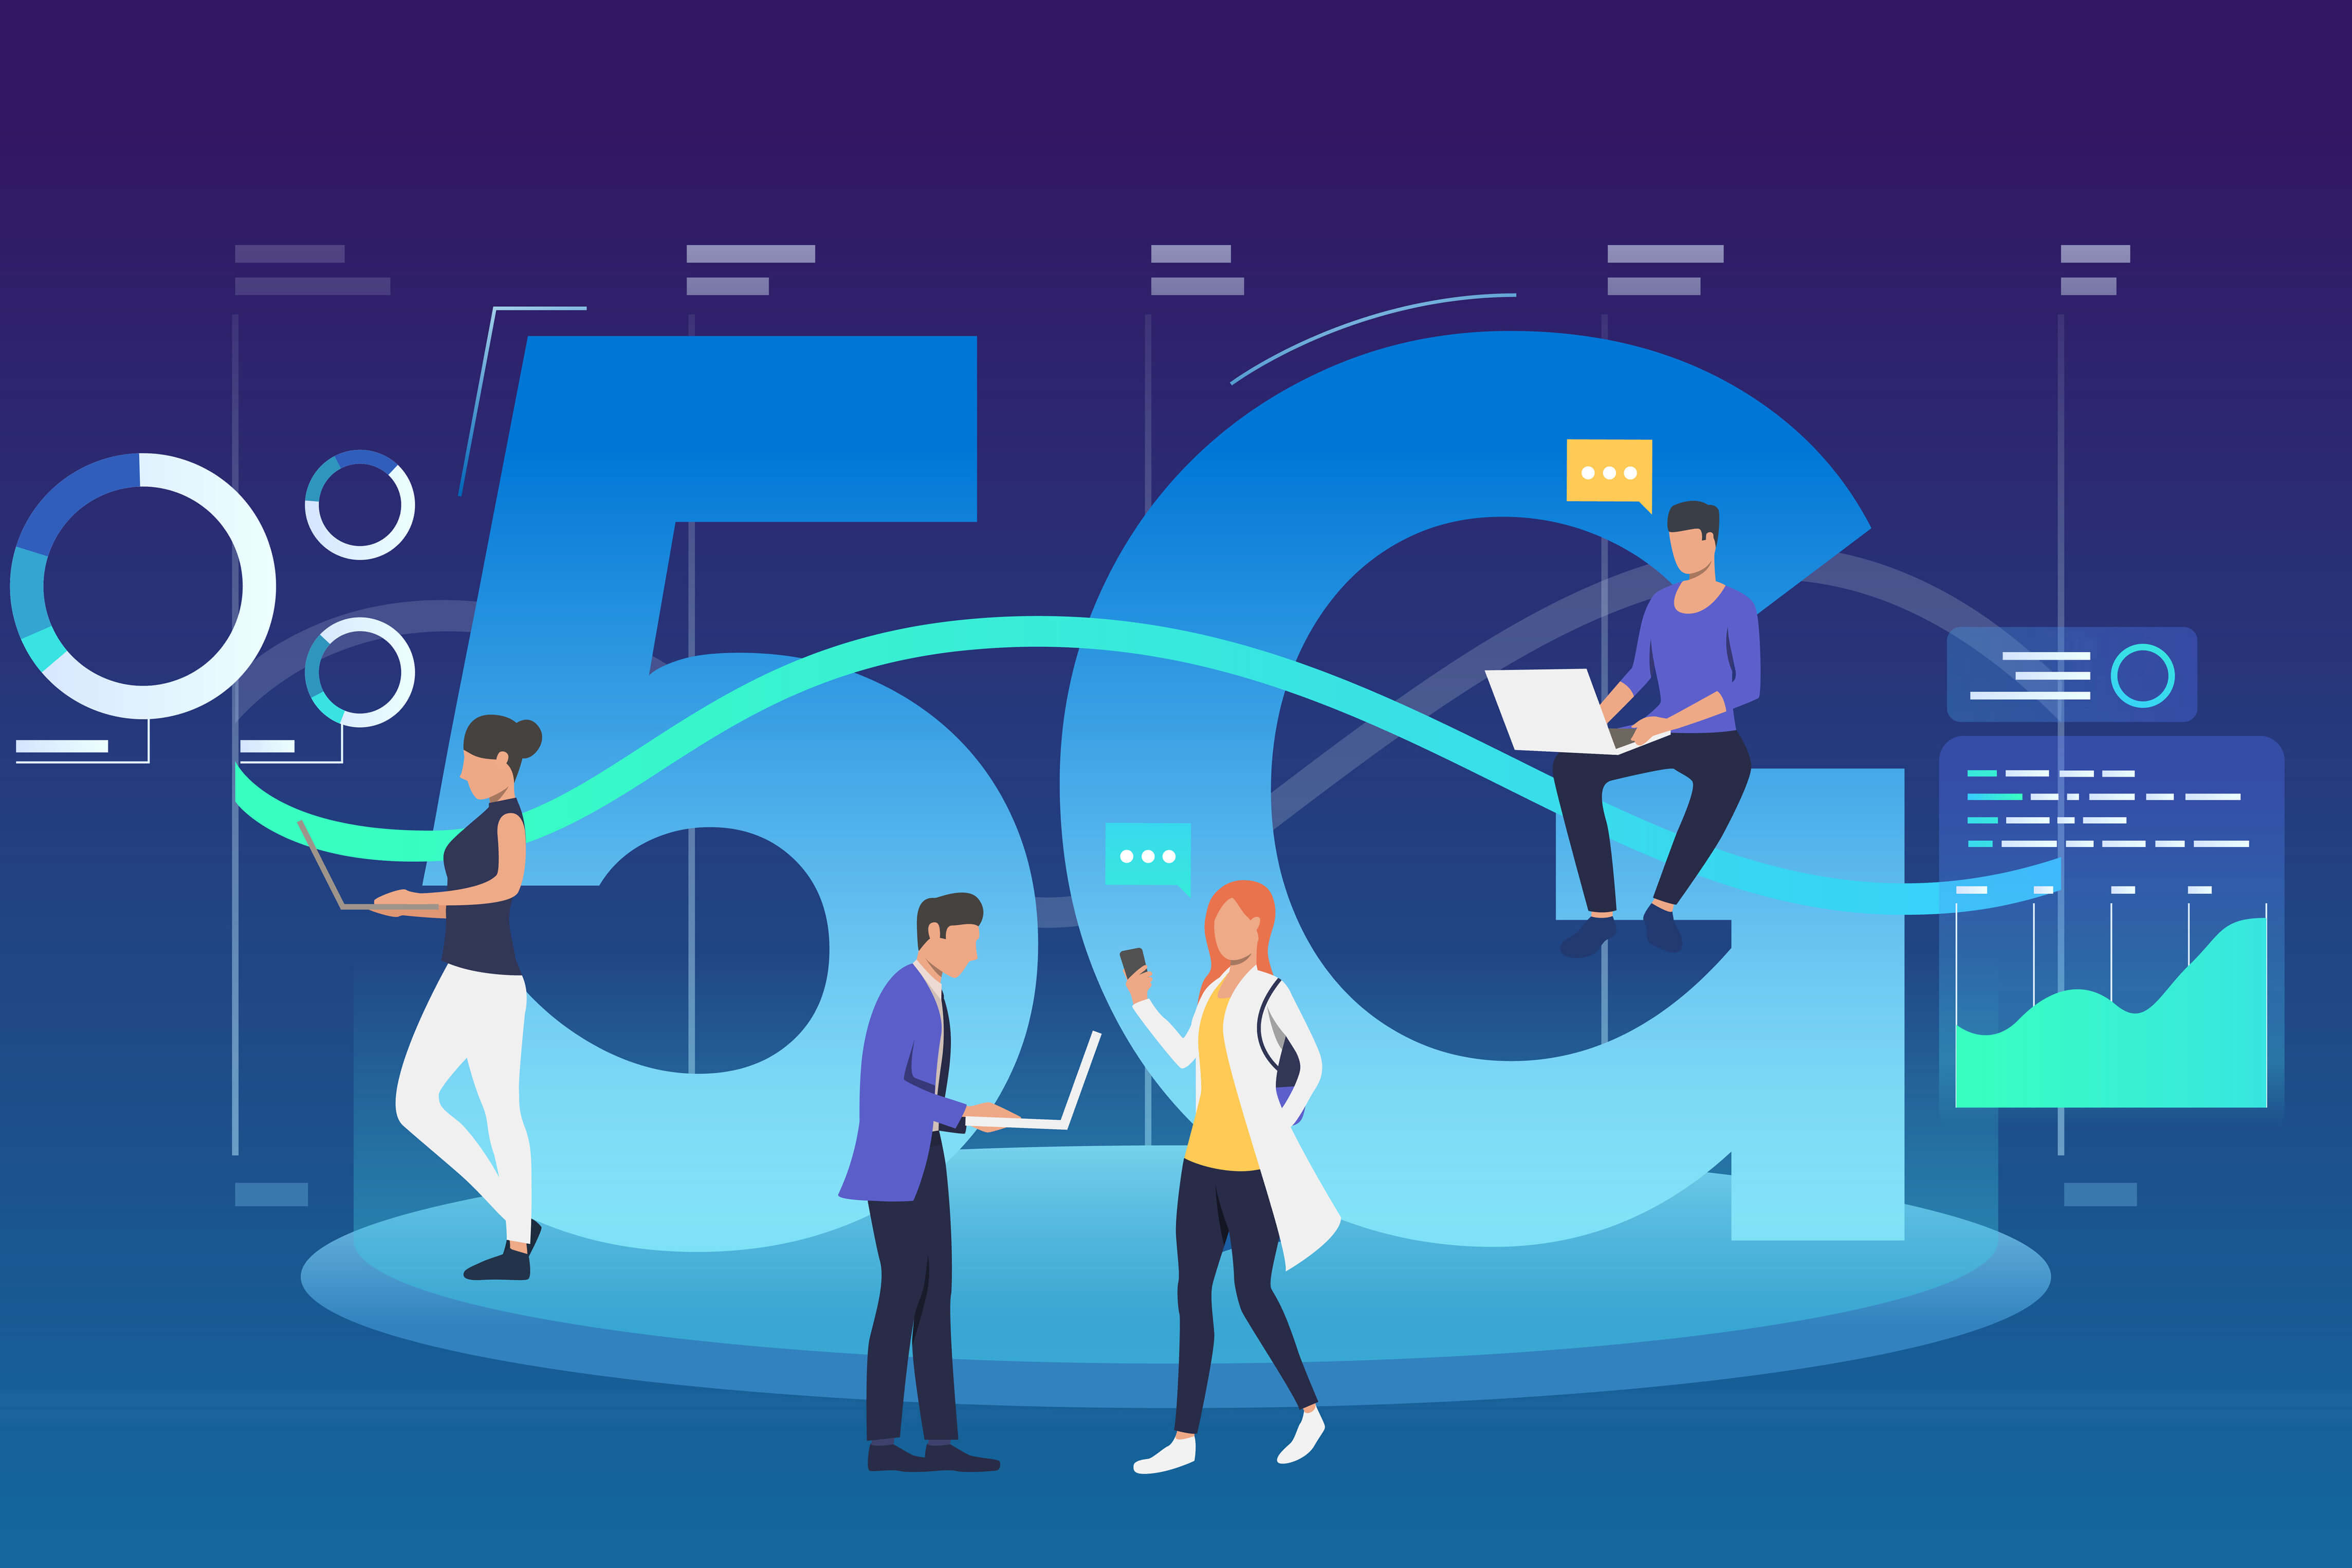 What Can People Do with 5G Cellular Network Technology